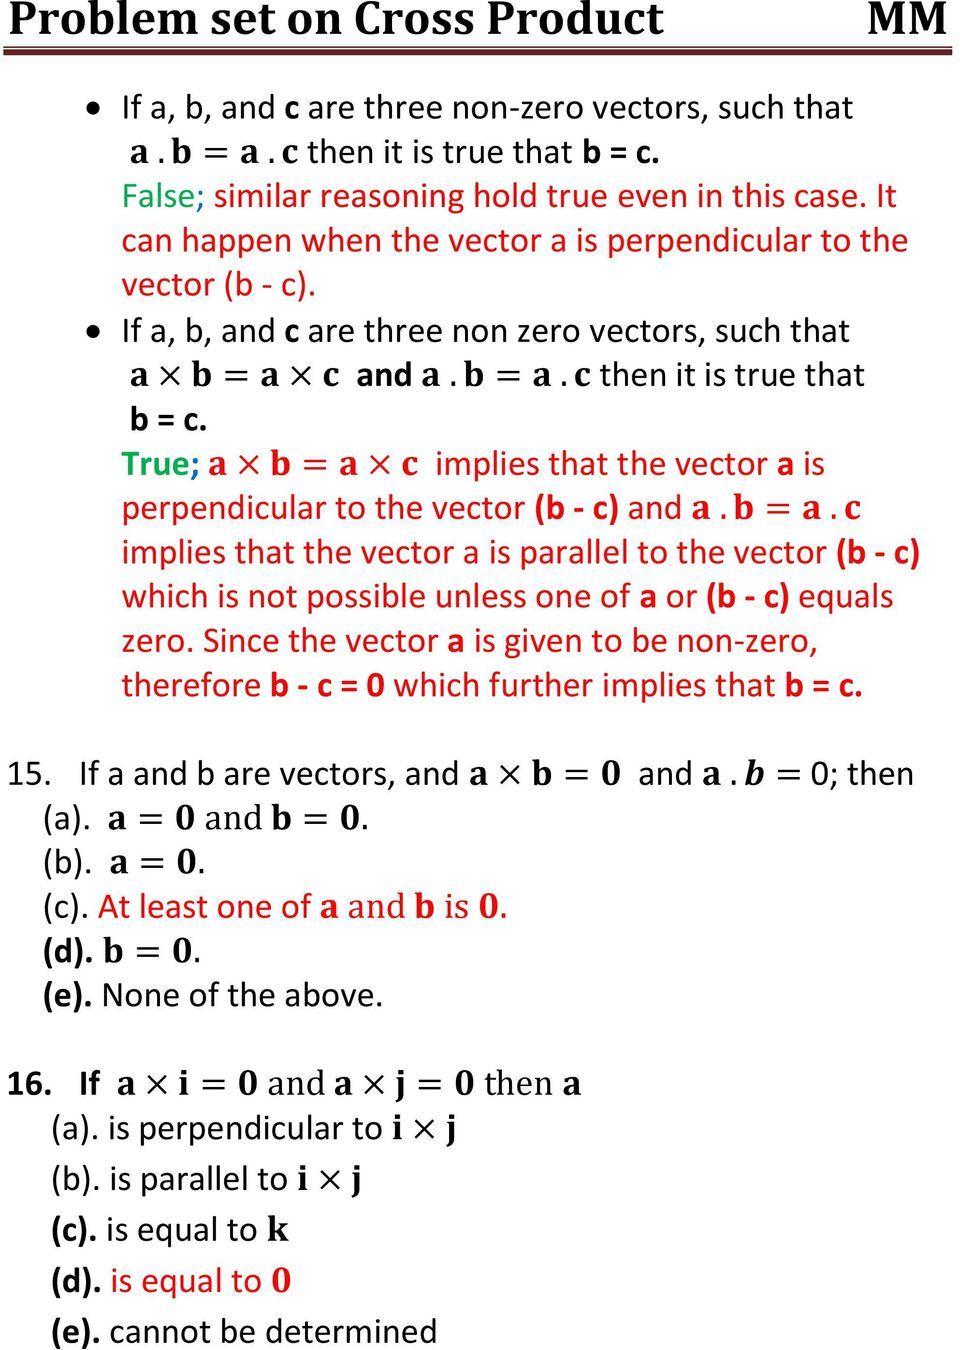 parallel to the vector (b - c) which is not possible unless one of a or (b - c) equals zero Since the vector a is given to be non-zero, therefore b - c = 0 which further implies that b = c 15 If